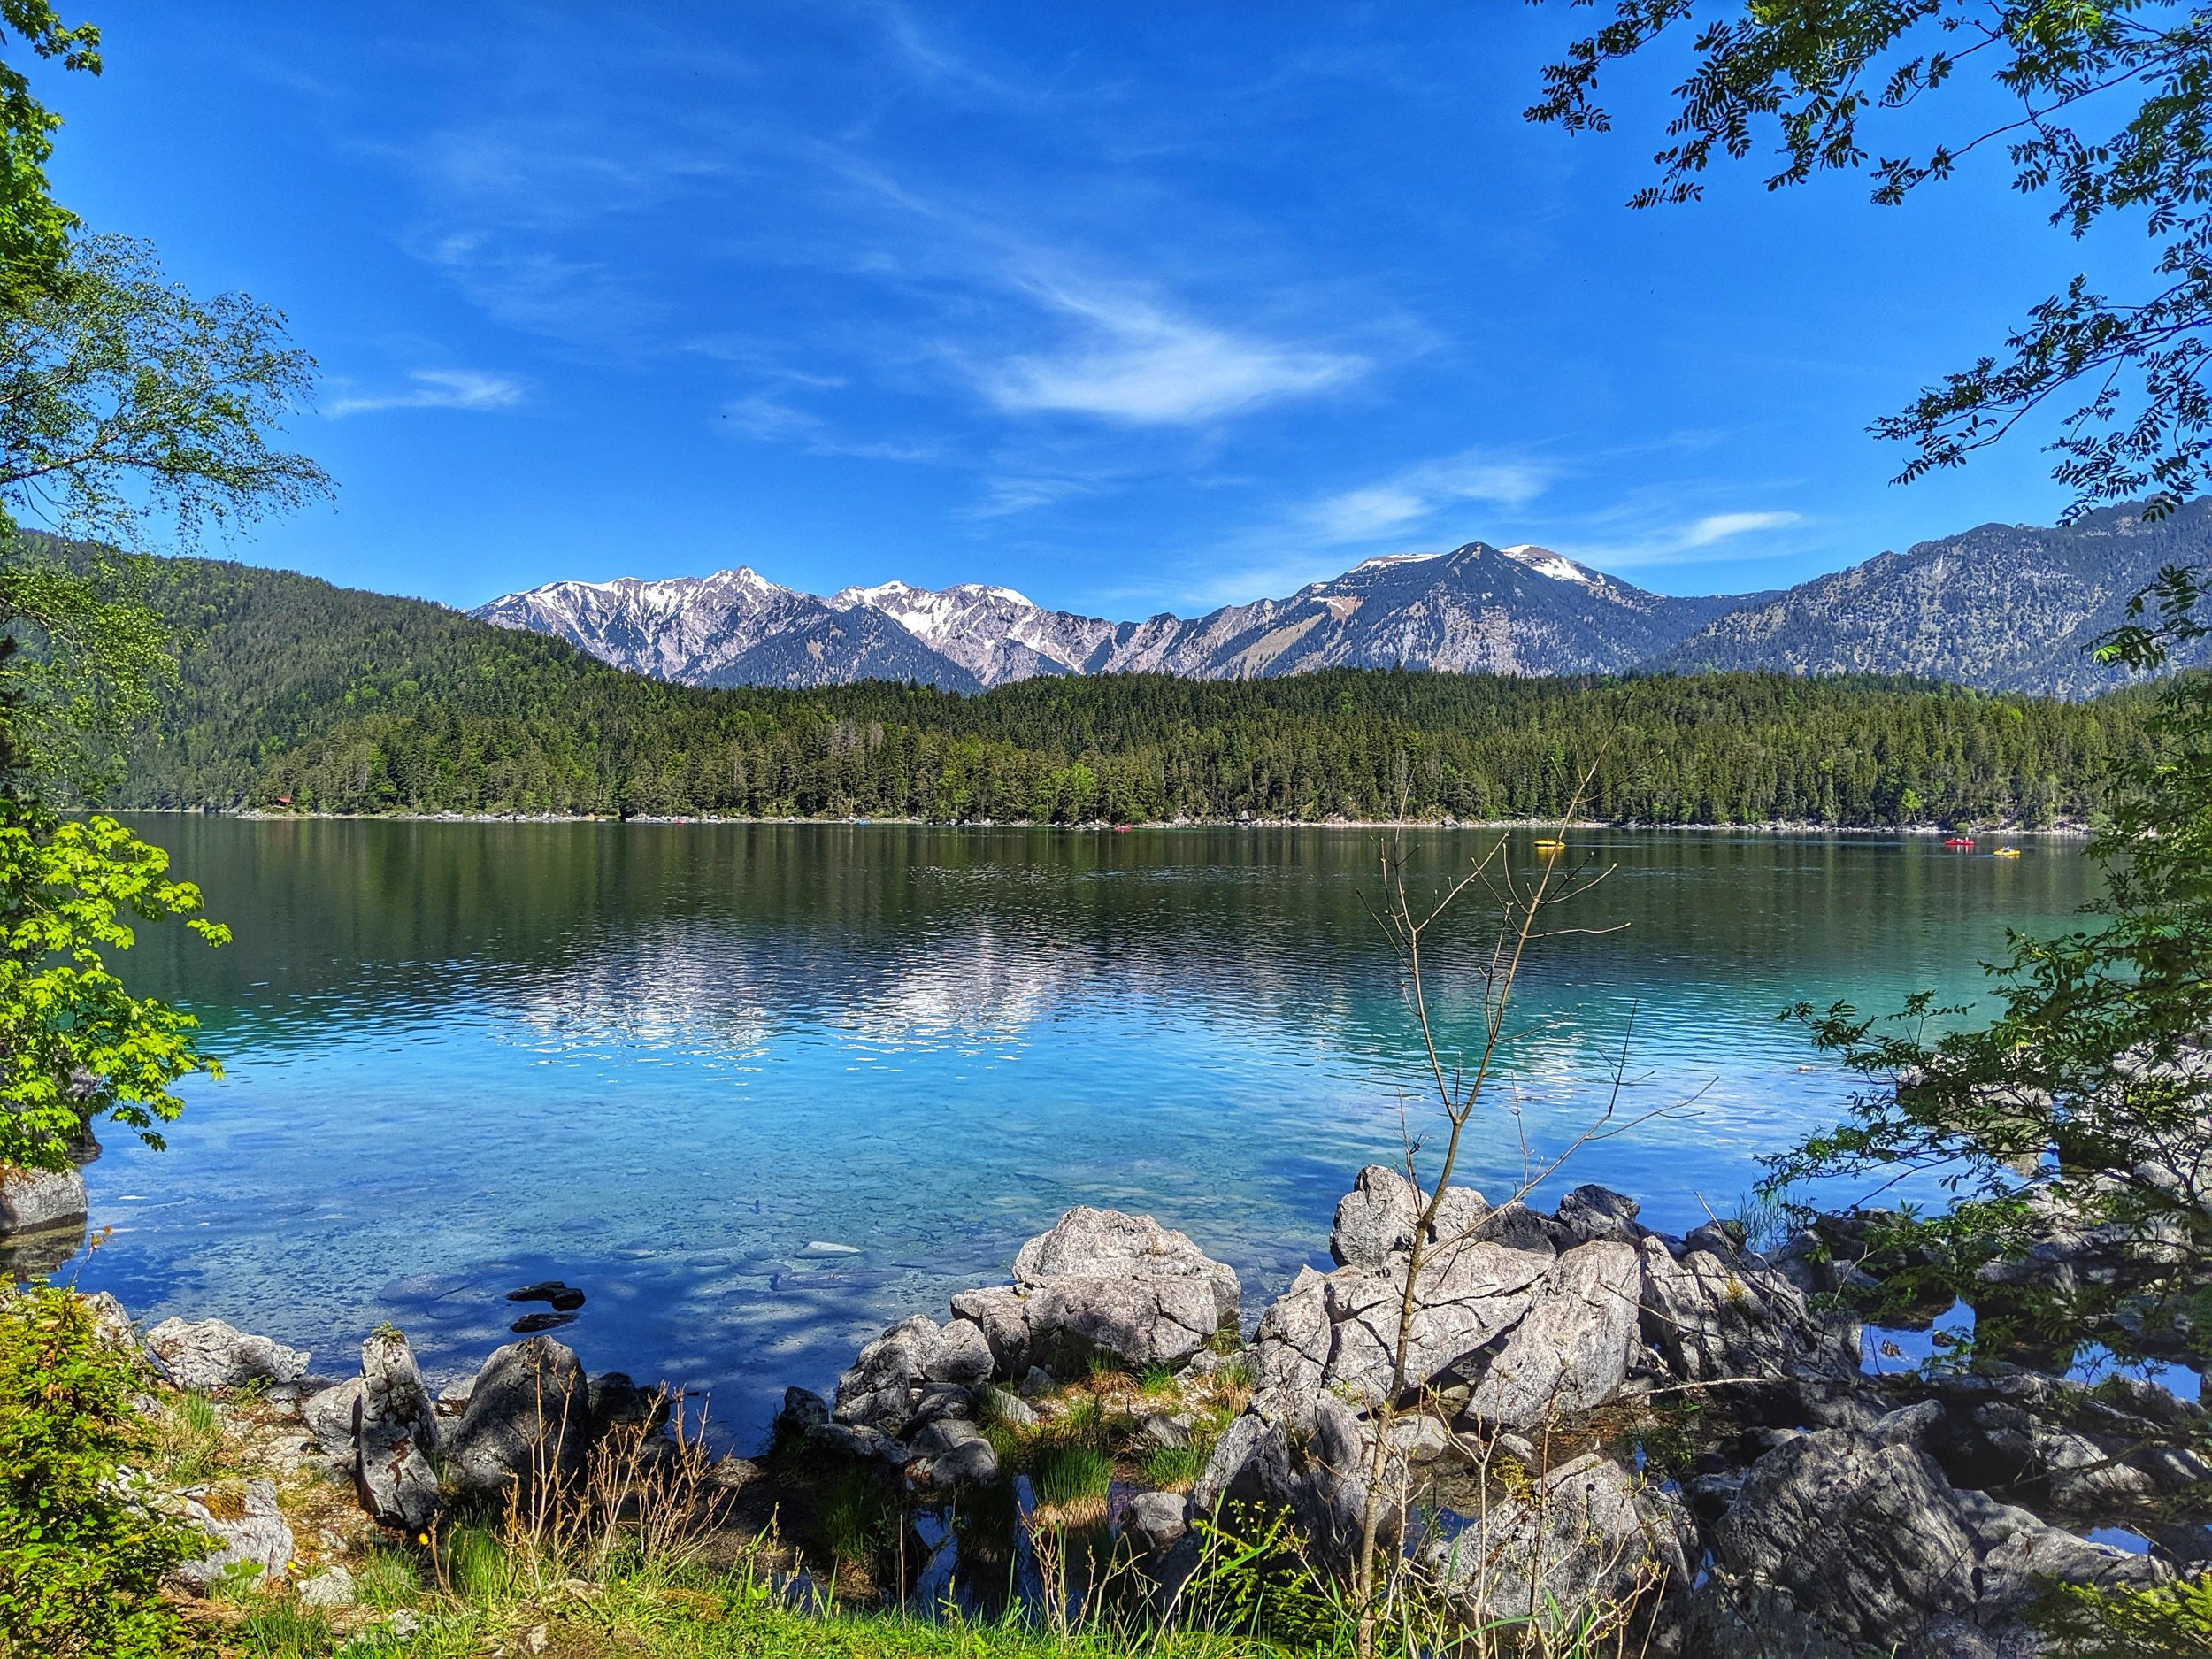 The views from all around Eibsee were wonderful